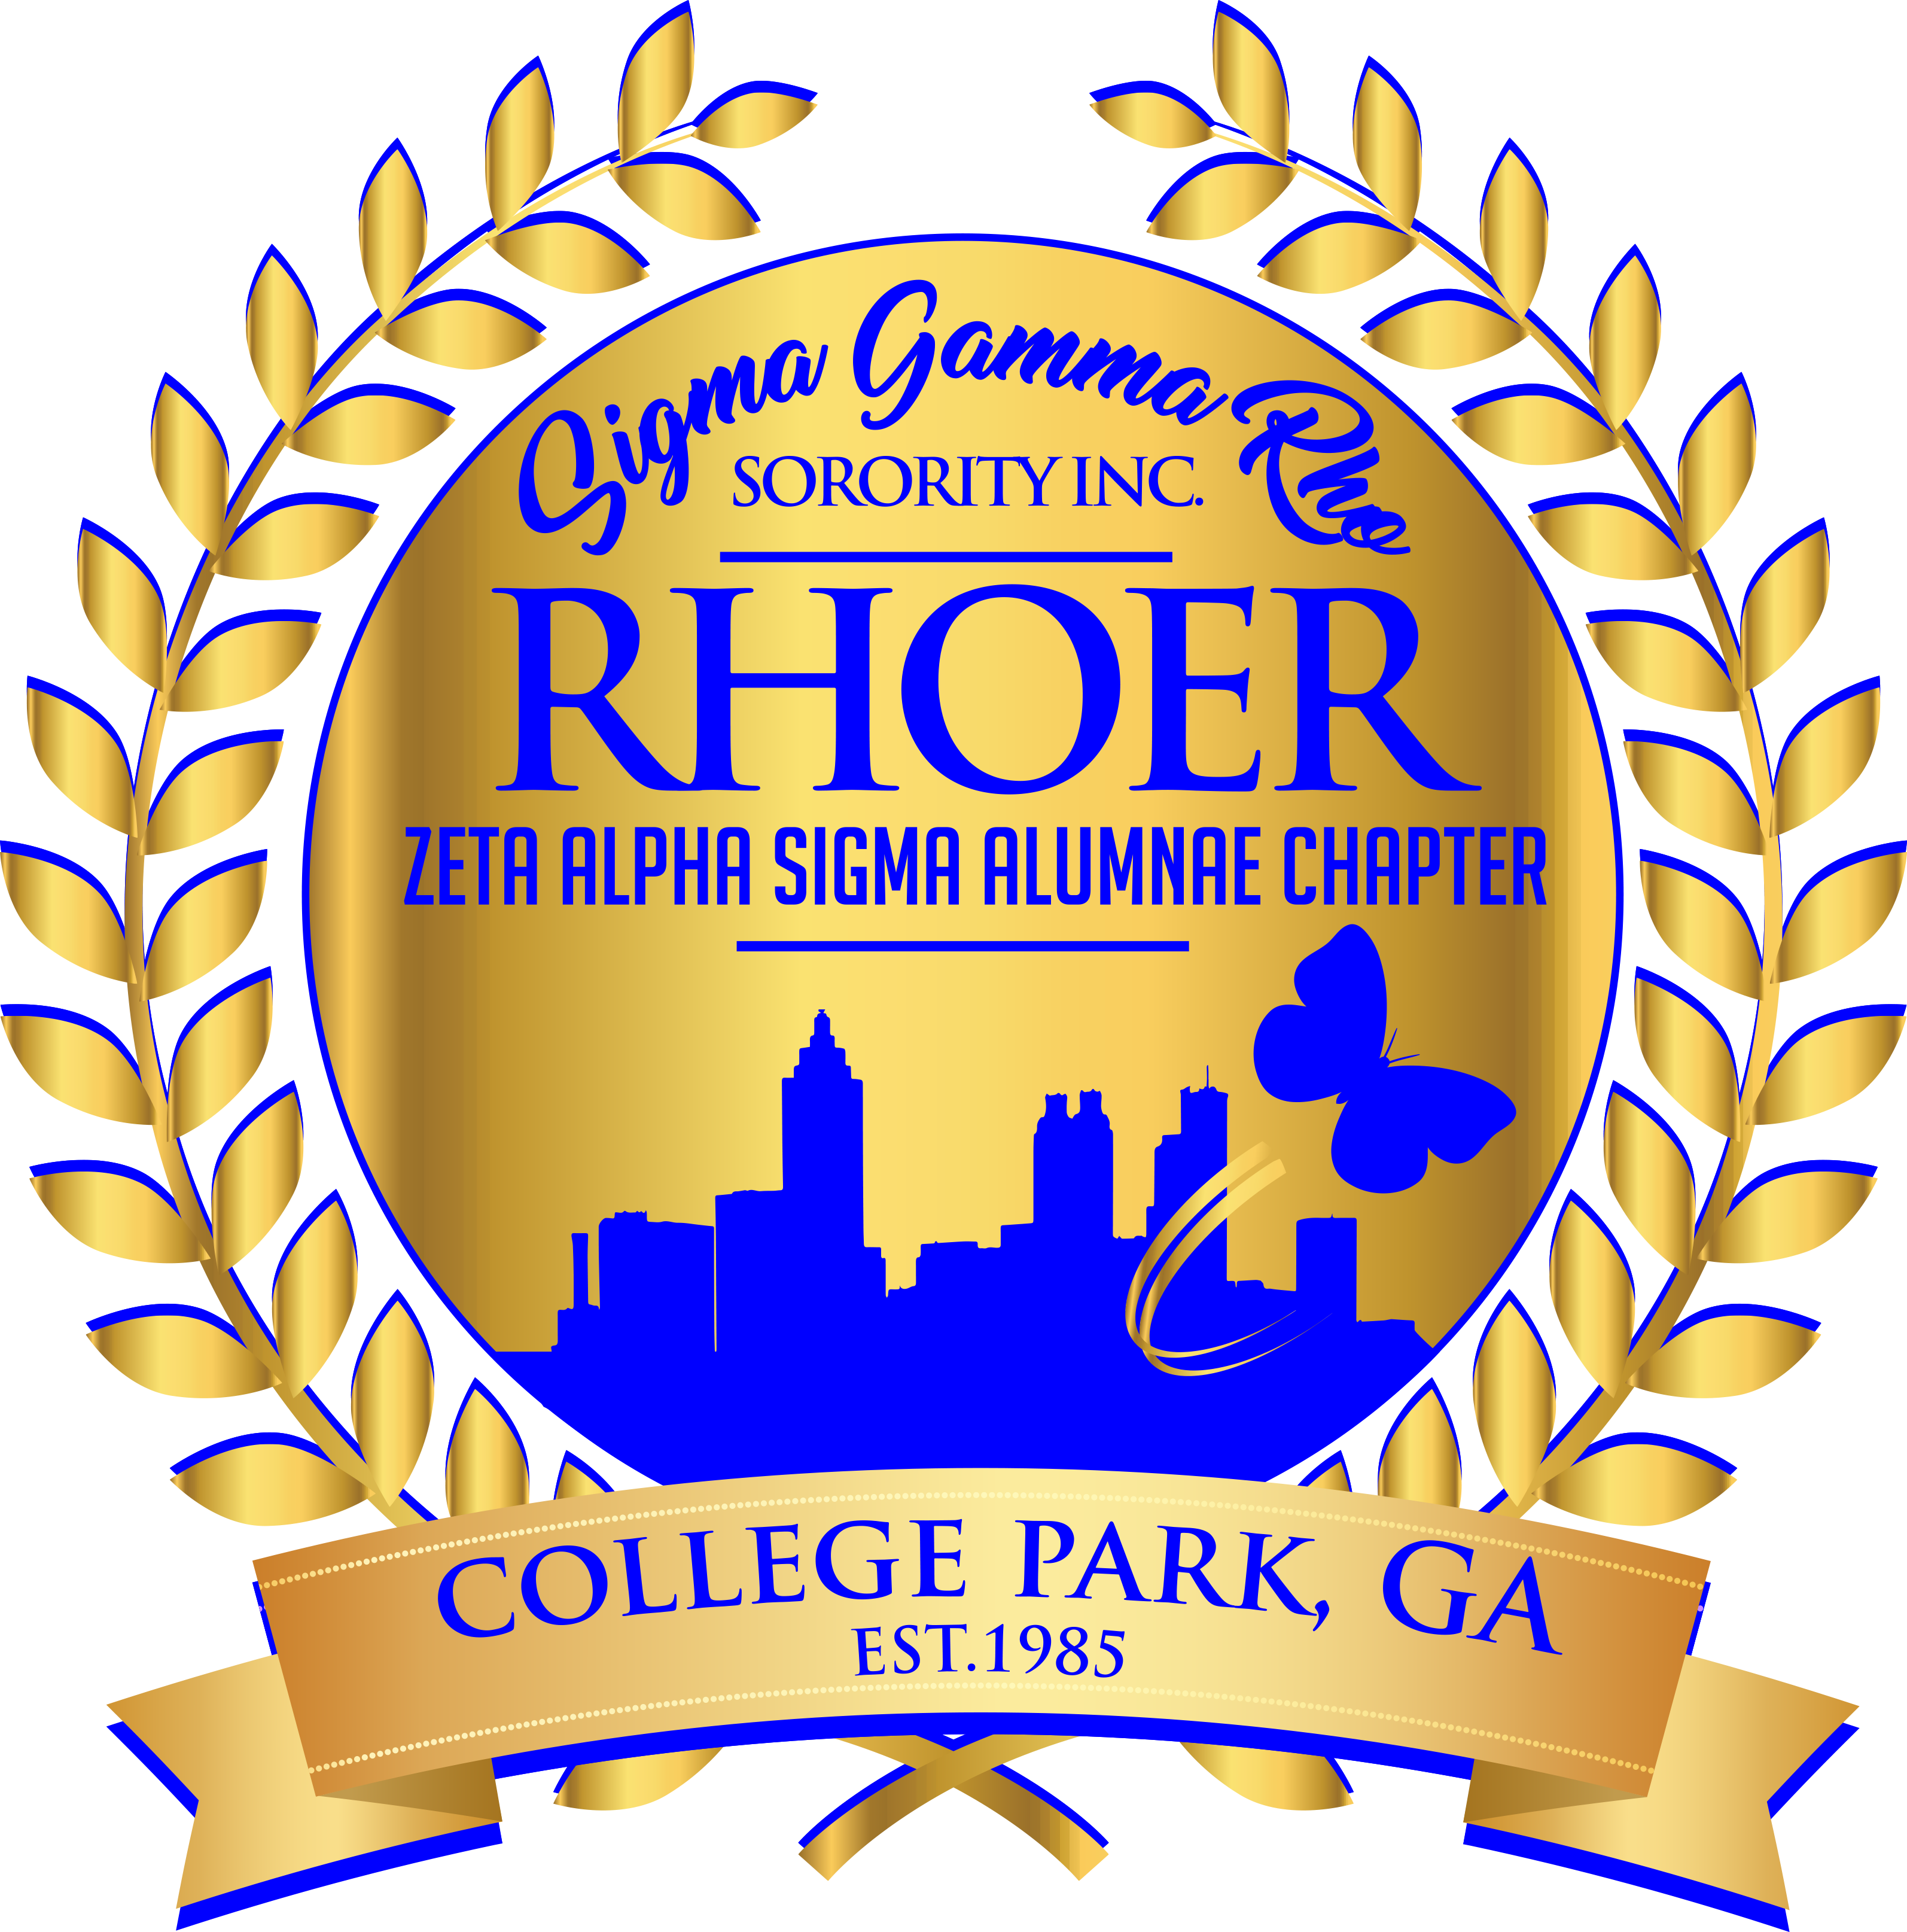 Rhoer club zeta alpha sigma alumnae chapter of sigma gamma rho the goals are to biocorpaavc Images